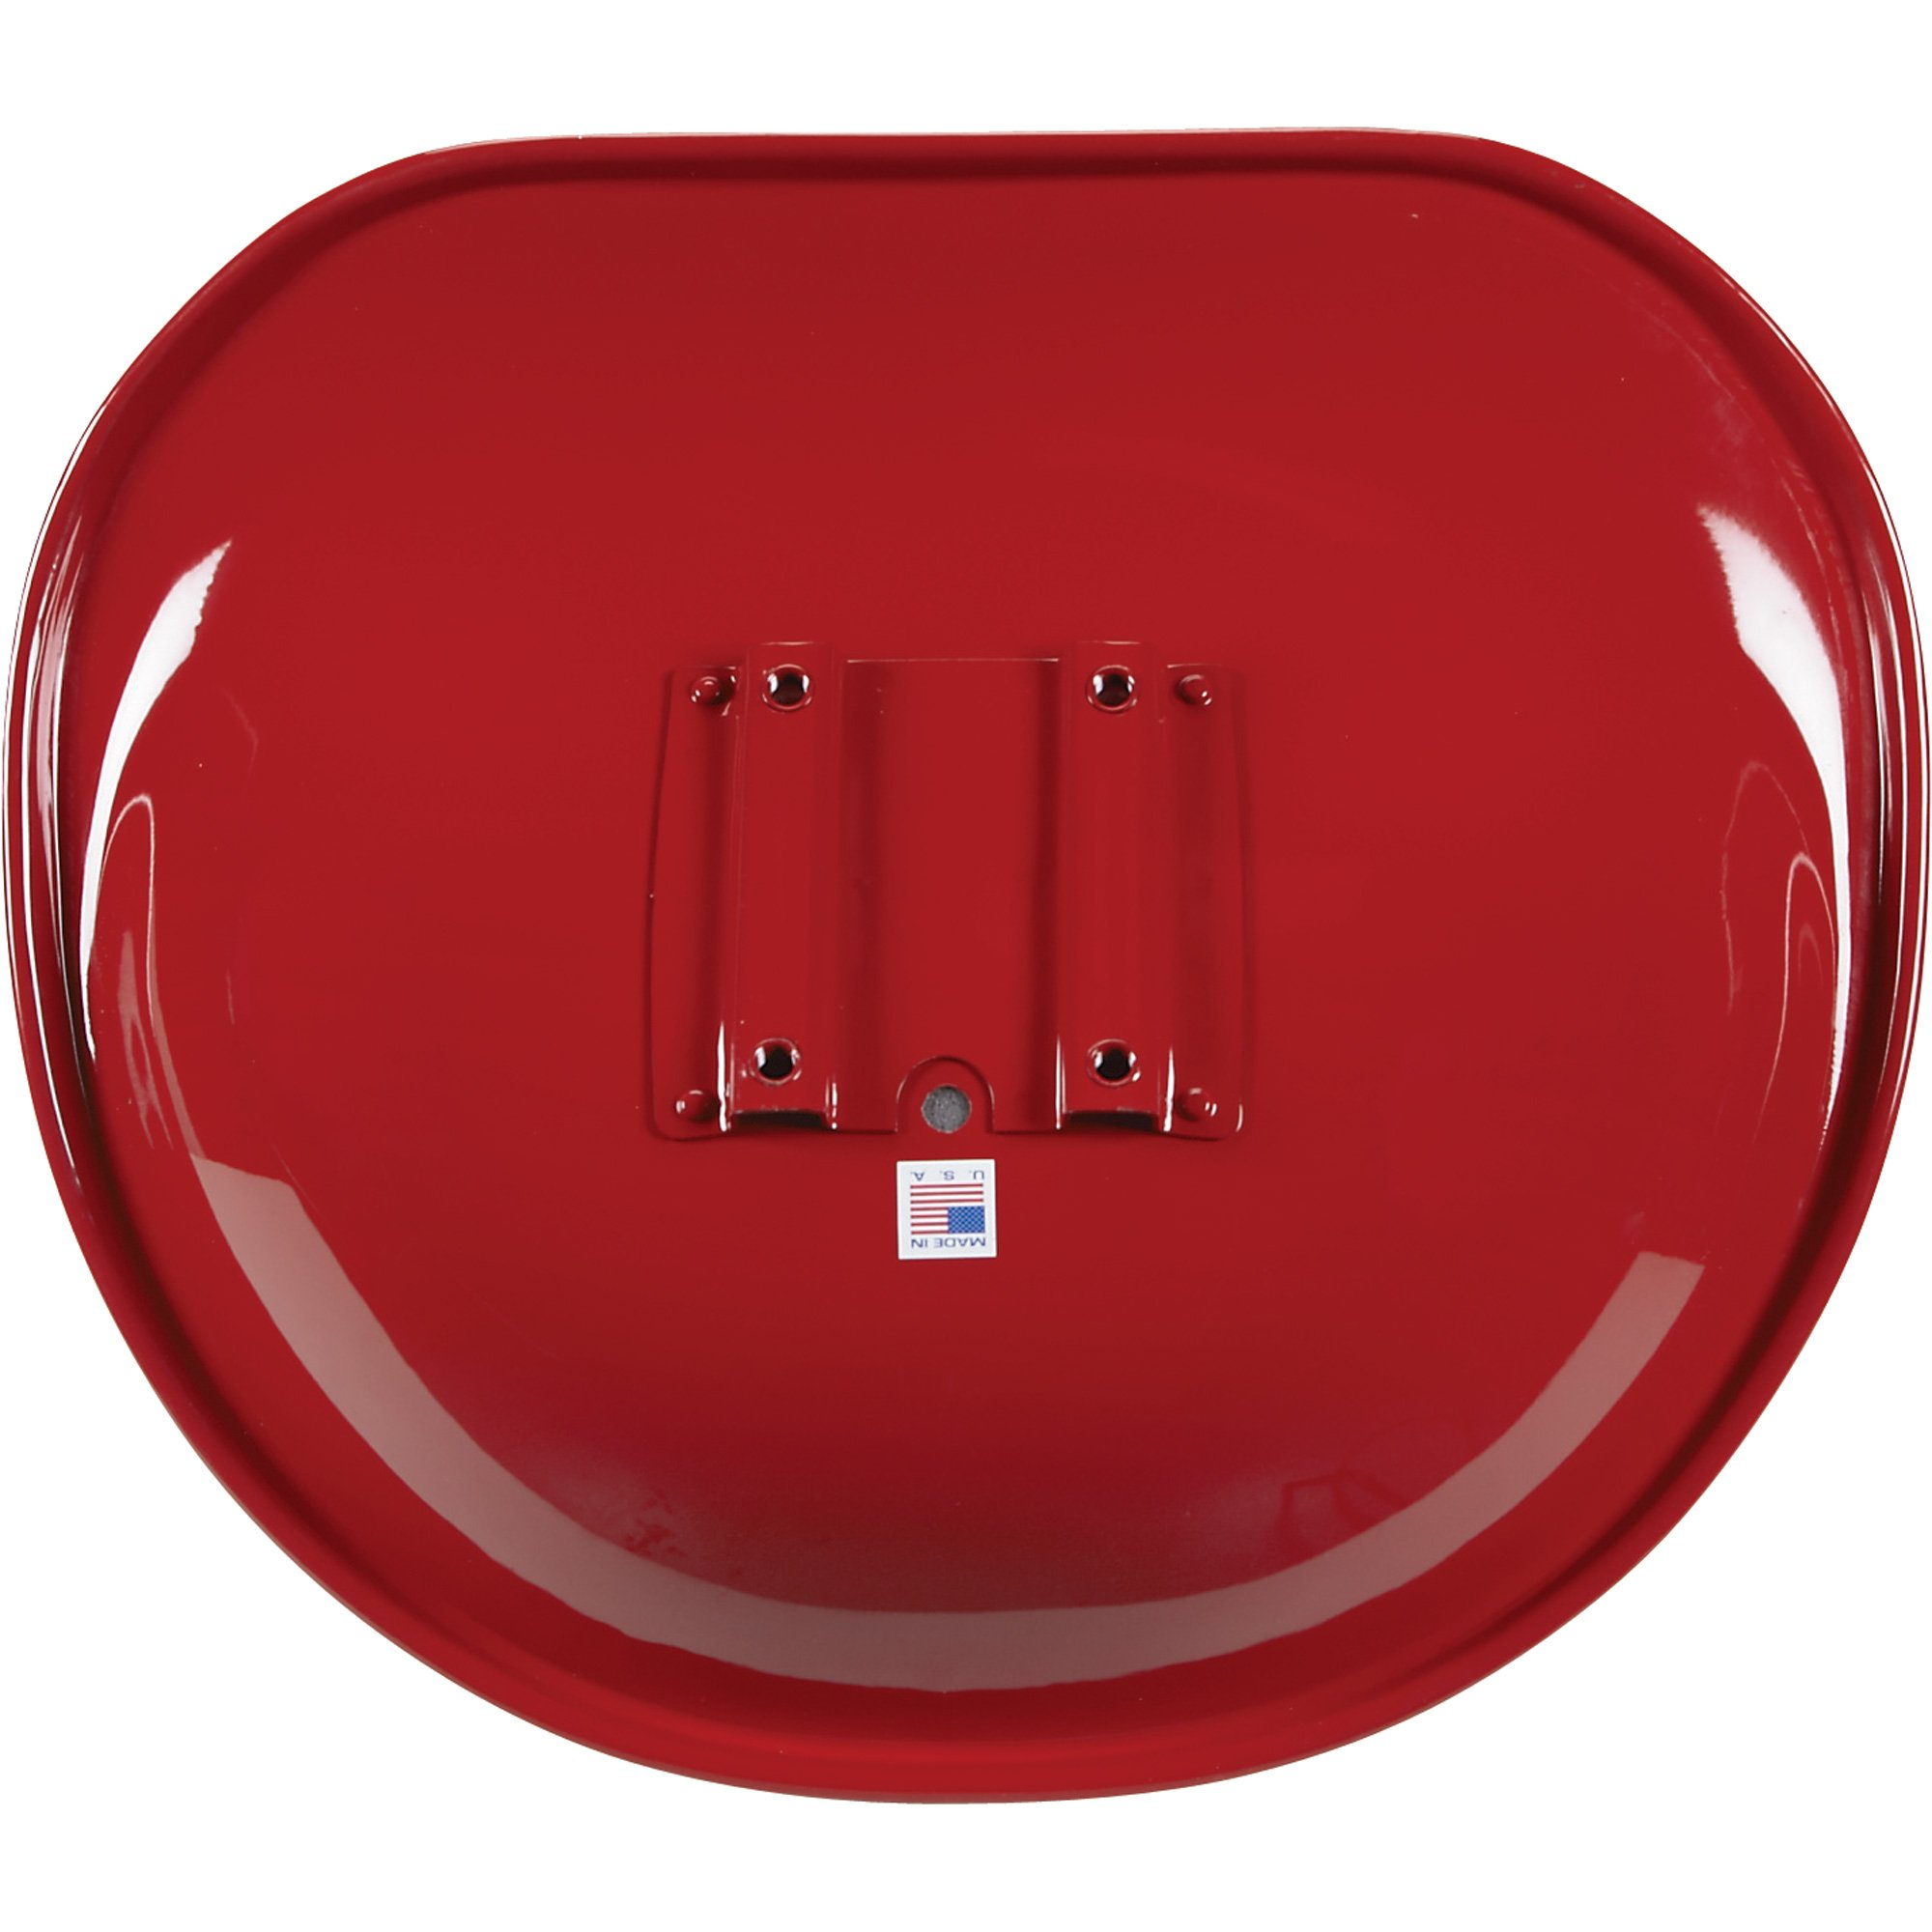 K & M Pan Seat for IH Tractors - Red and White, Model Number 7181 by K & M